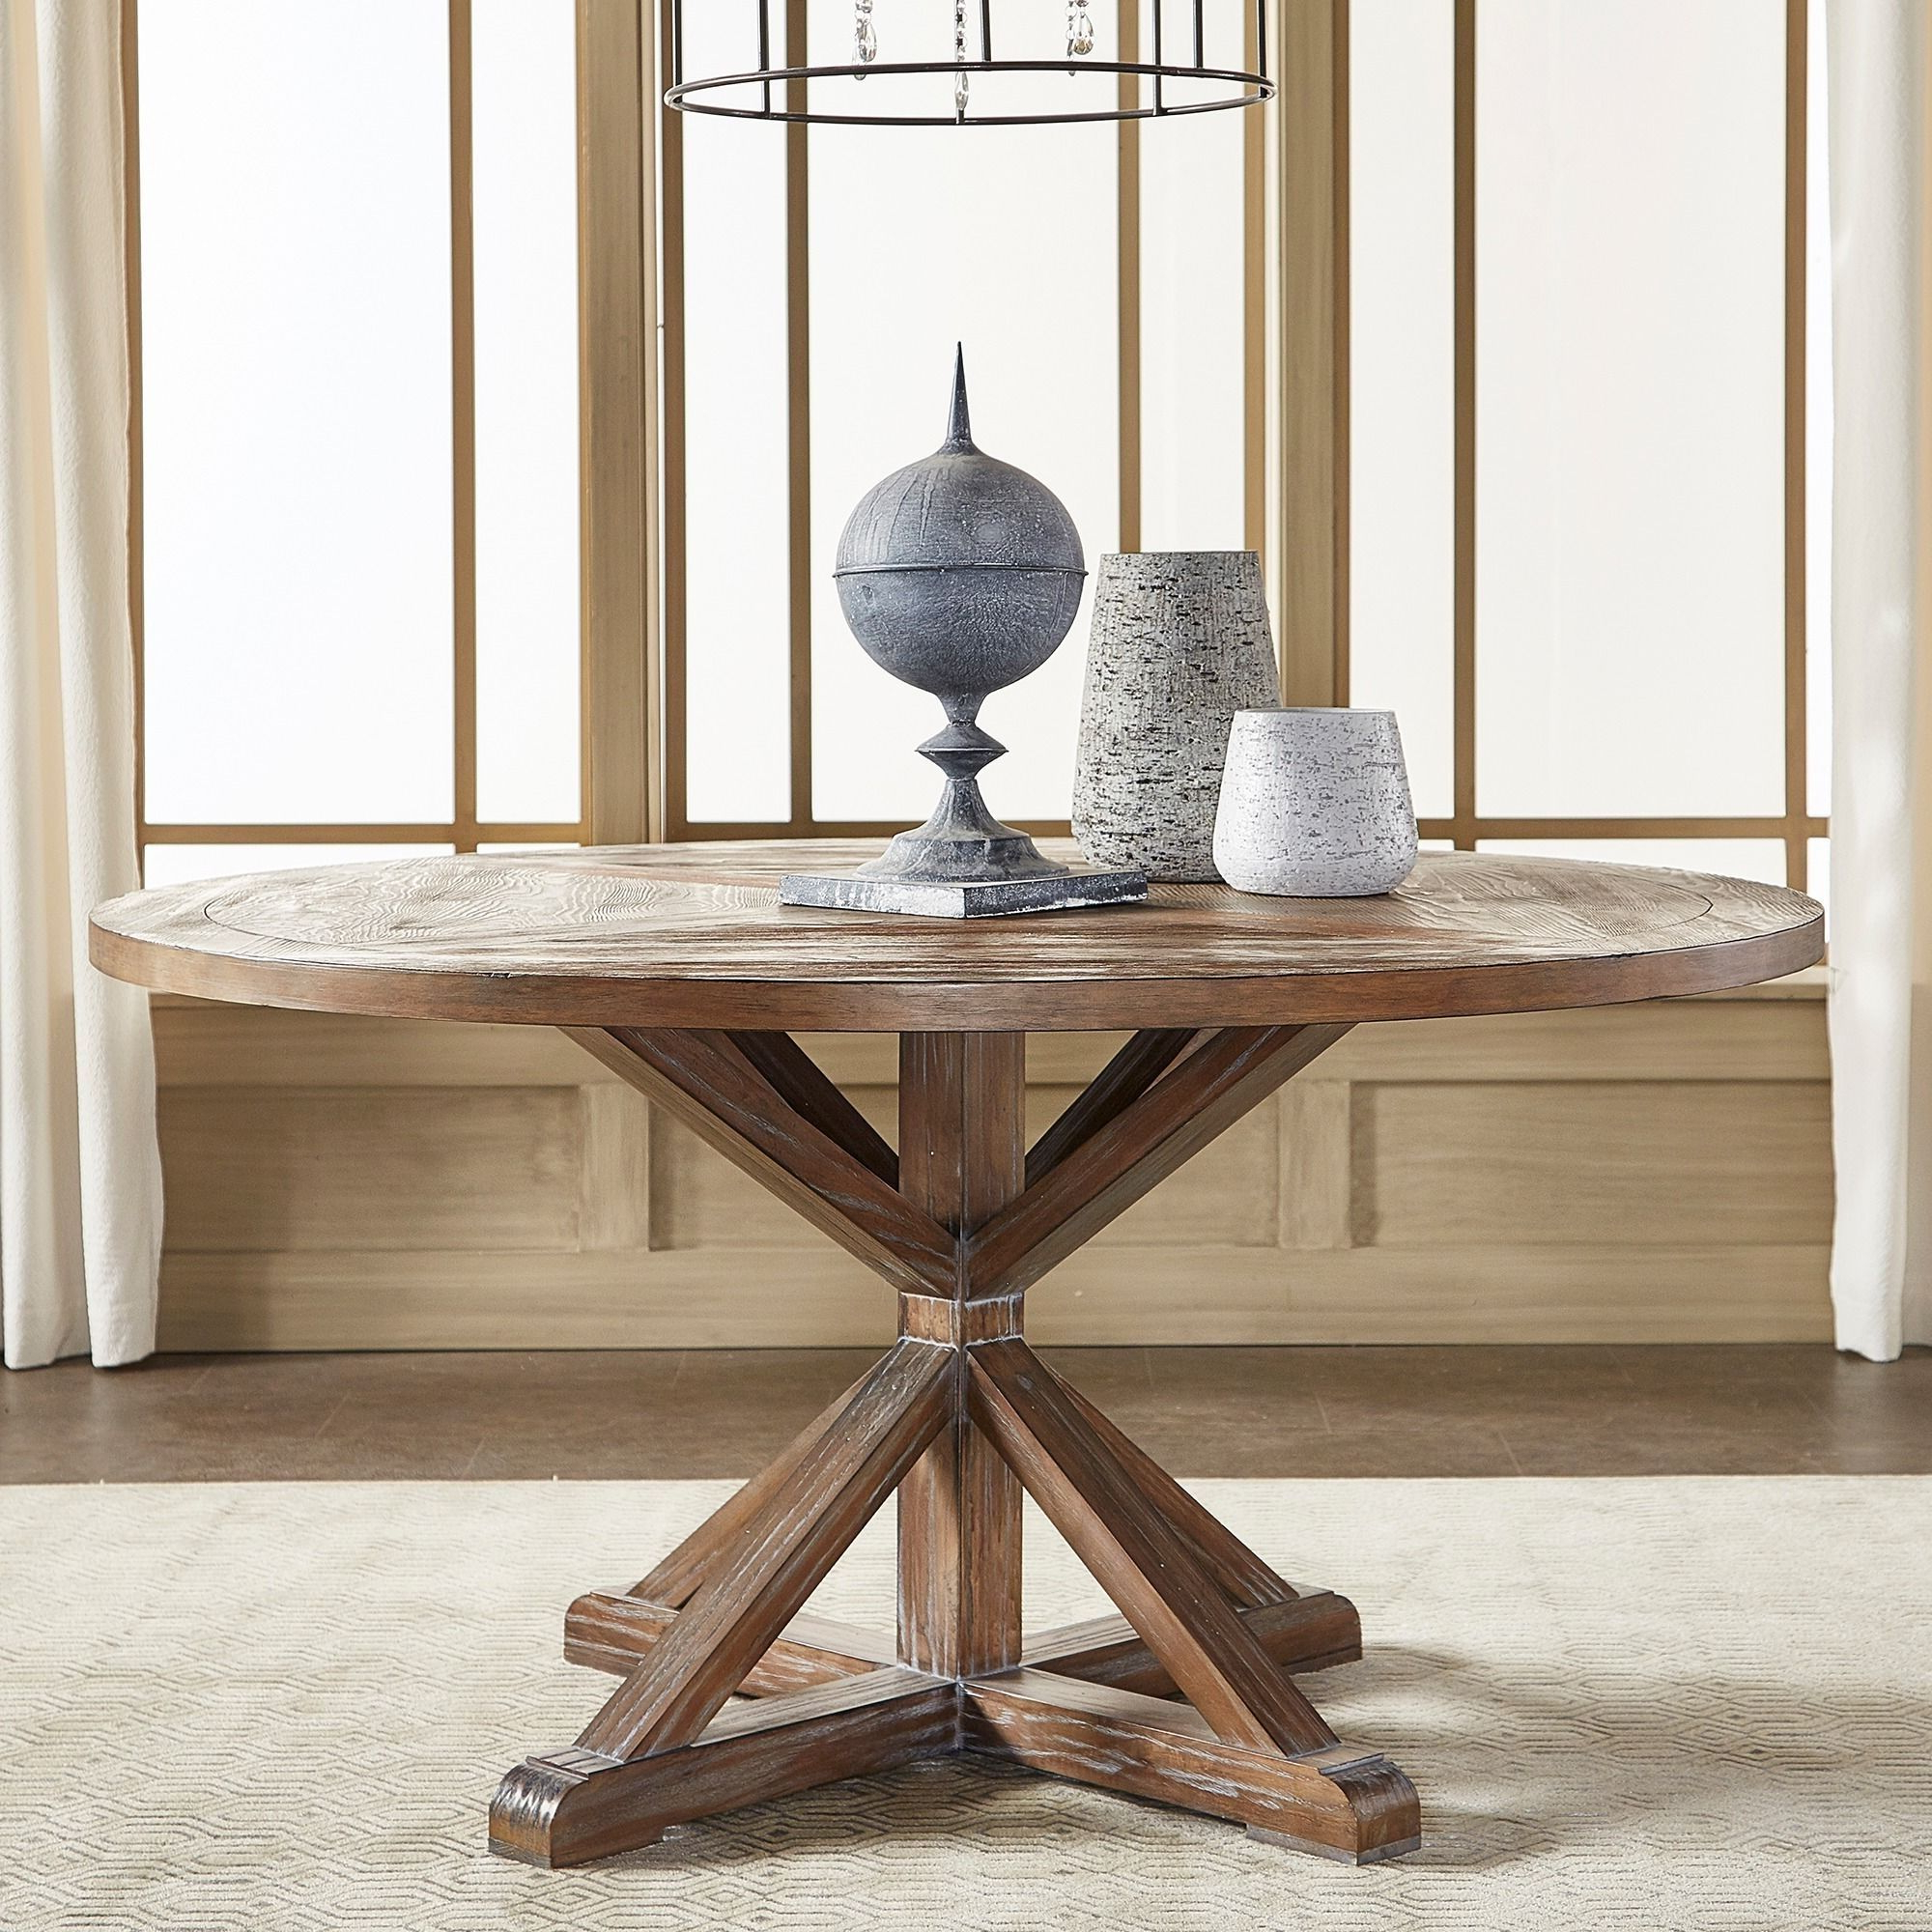 Well Known Benchwright Rustic X Base Round Pine Wood Dining Table Pertaining To Benchwright Round Pedestal Dining Tables (View 5 of 25)